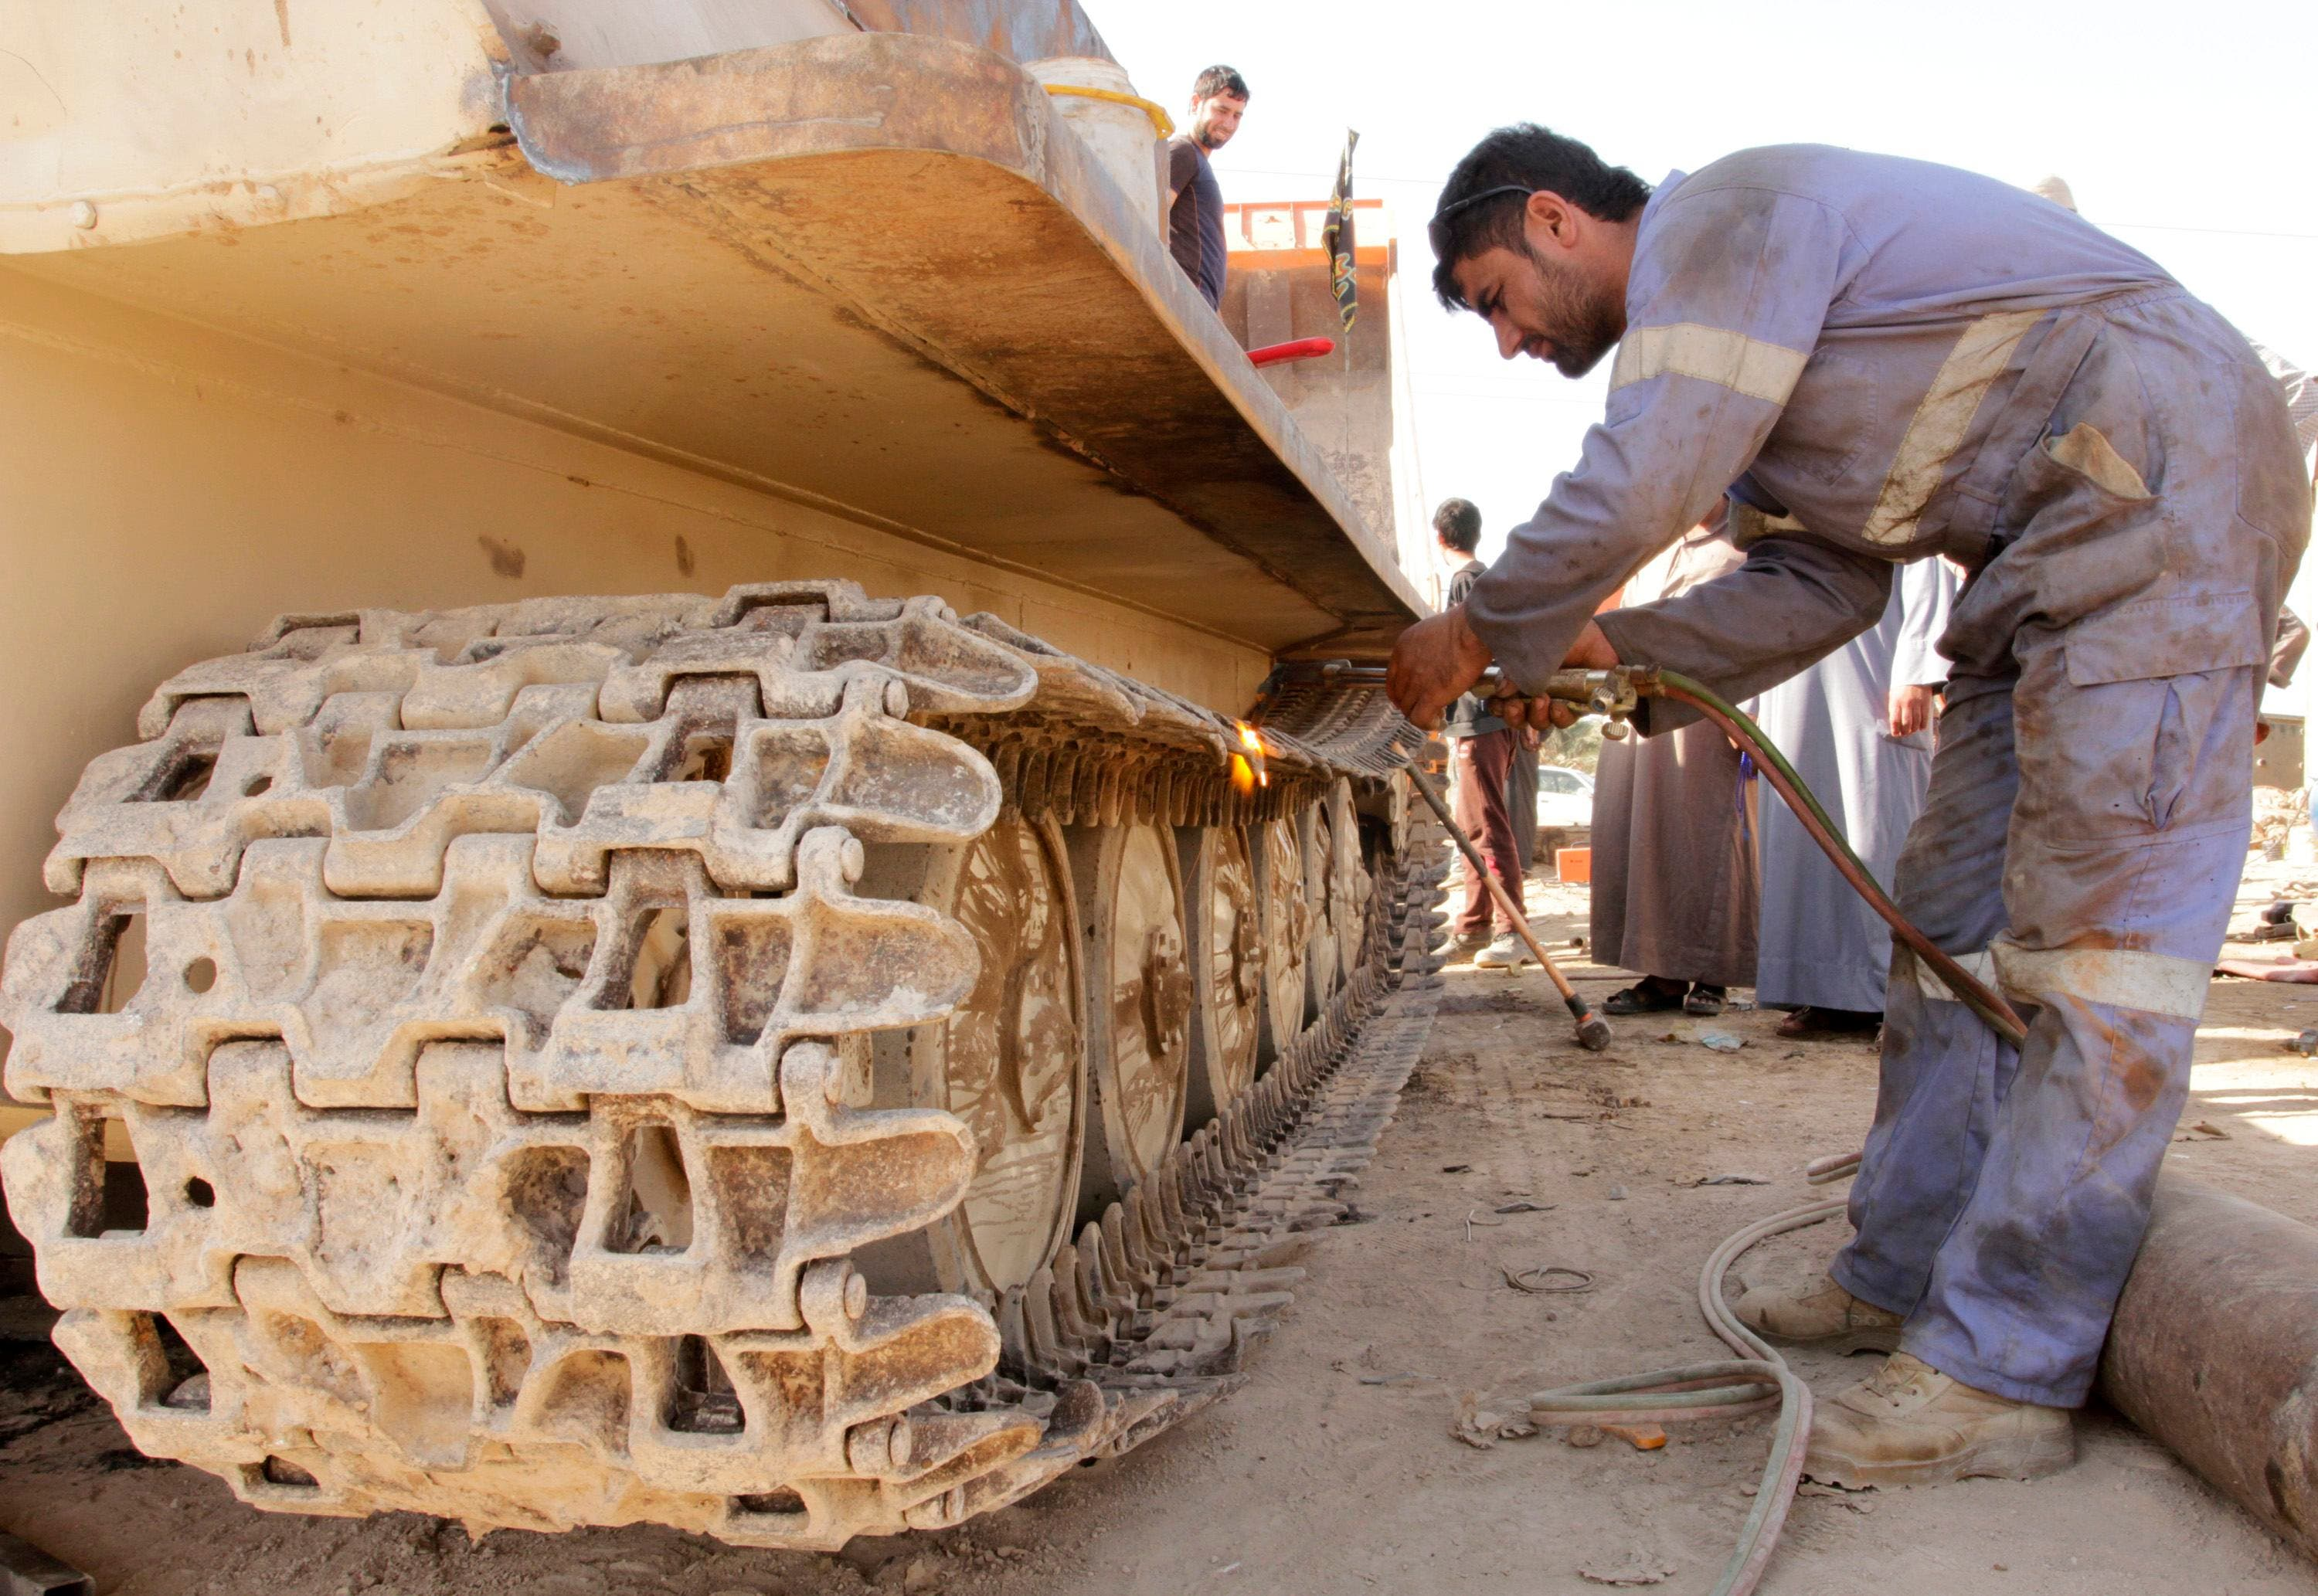 Iraq's newest conflict rescues rusting tanks from scrapheap (Reuters)